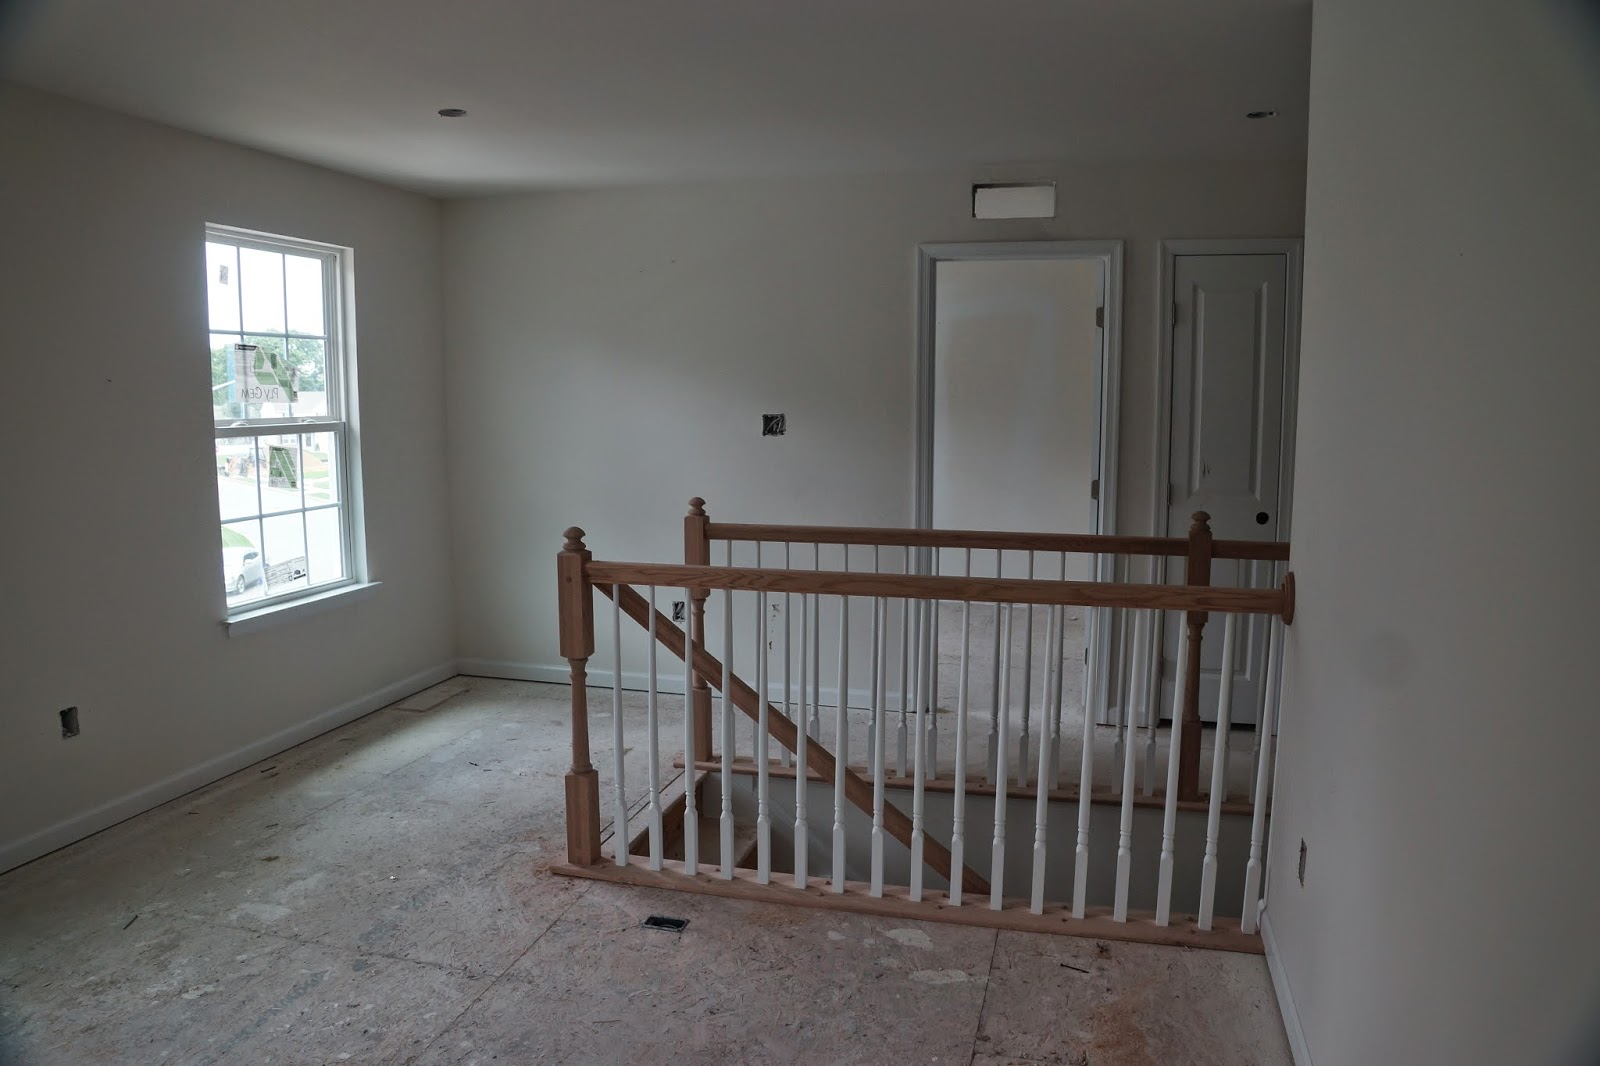 Picture of the unfinished banister on the top of the stairs as viewed from the loft